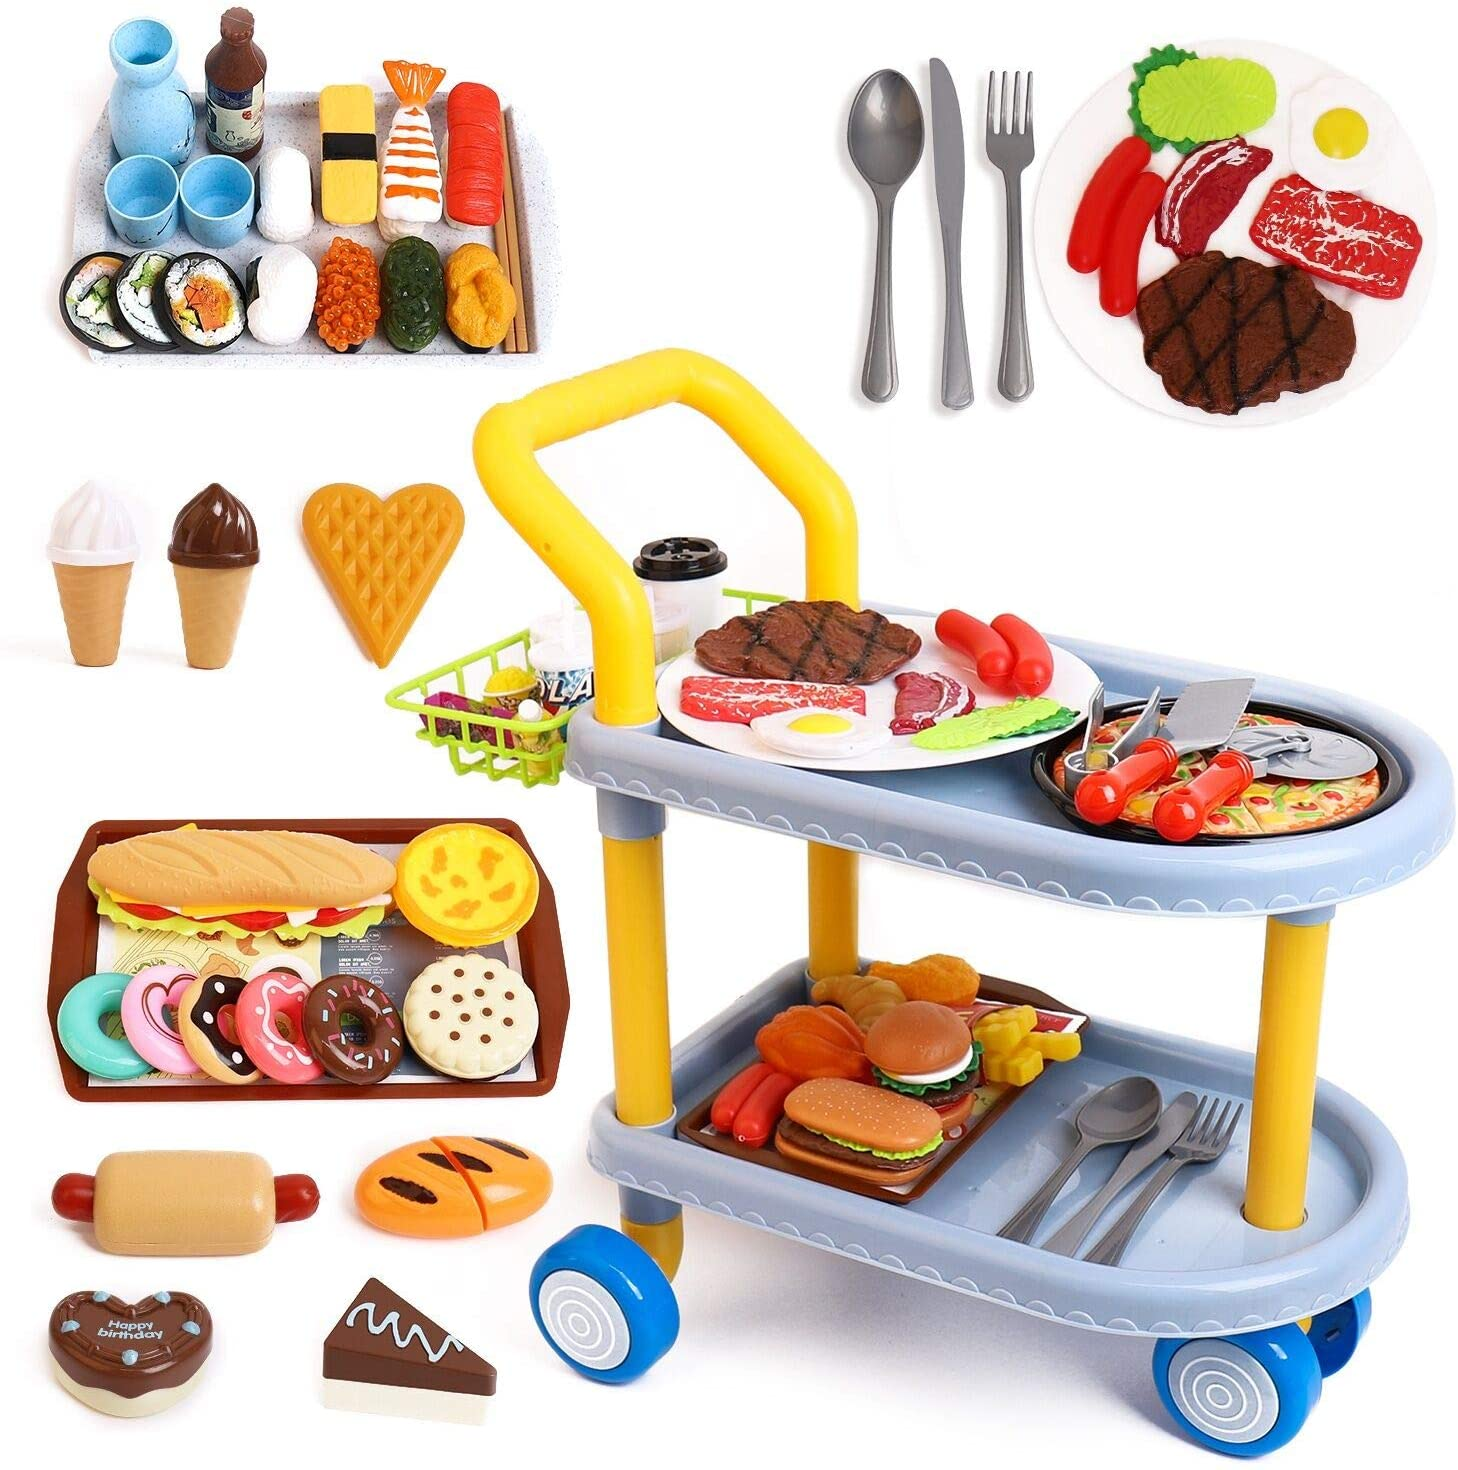 Kids Food cart Toy Sets,Kids Role Play Large Dining car Toys and 98pcs Food, Kitchen, Tableware Accessories., Educational Toys for 3+ Years Boys/Gir